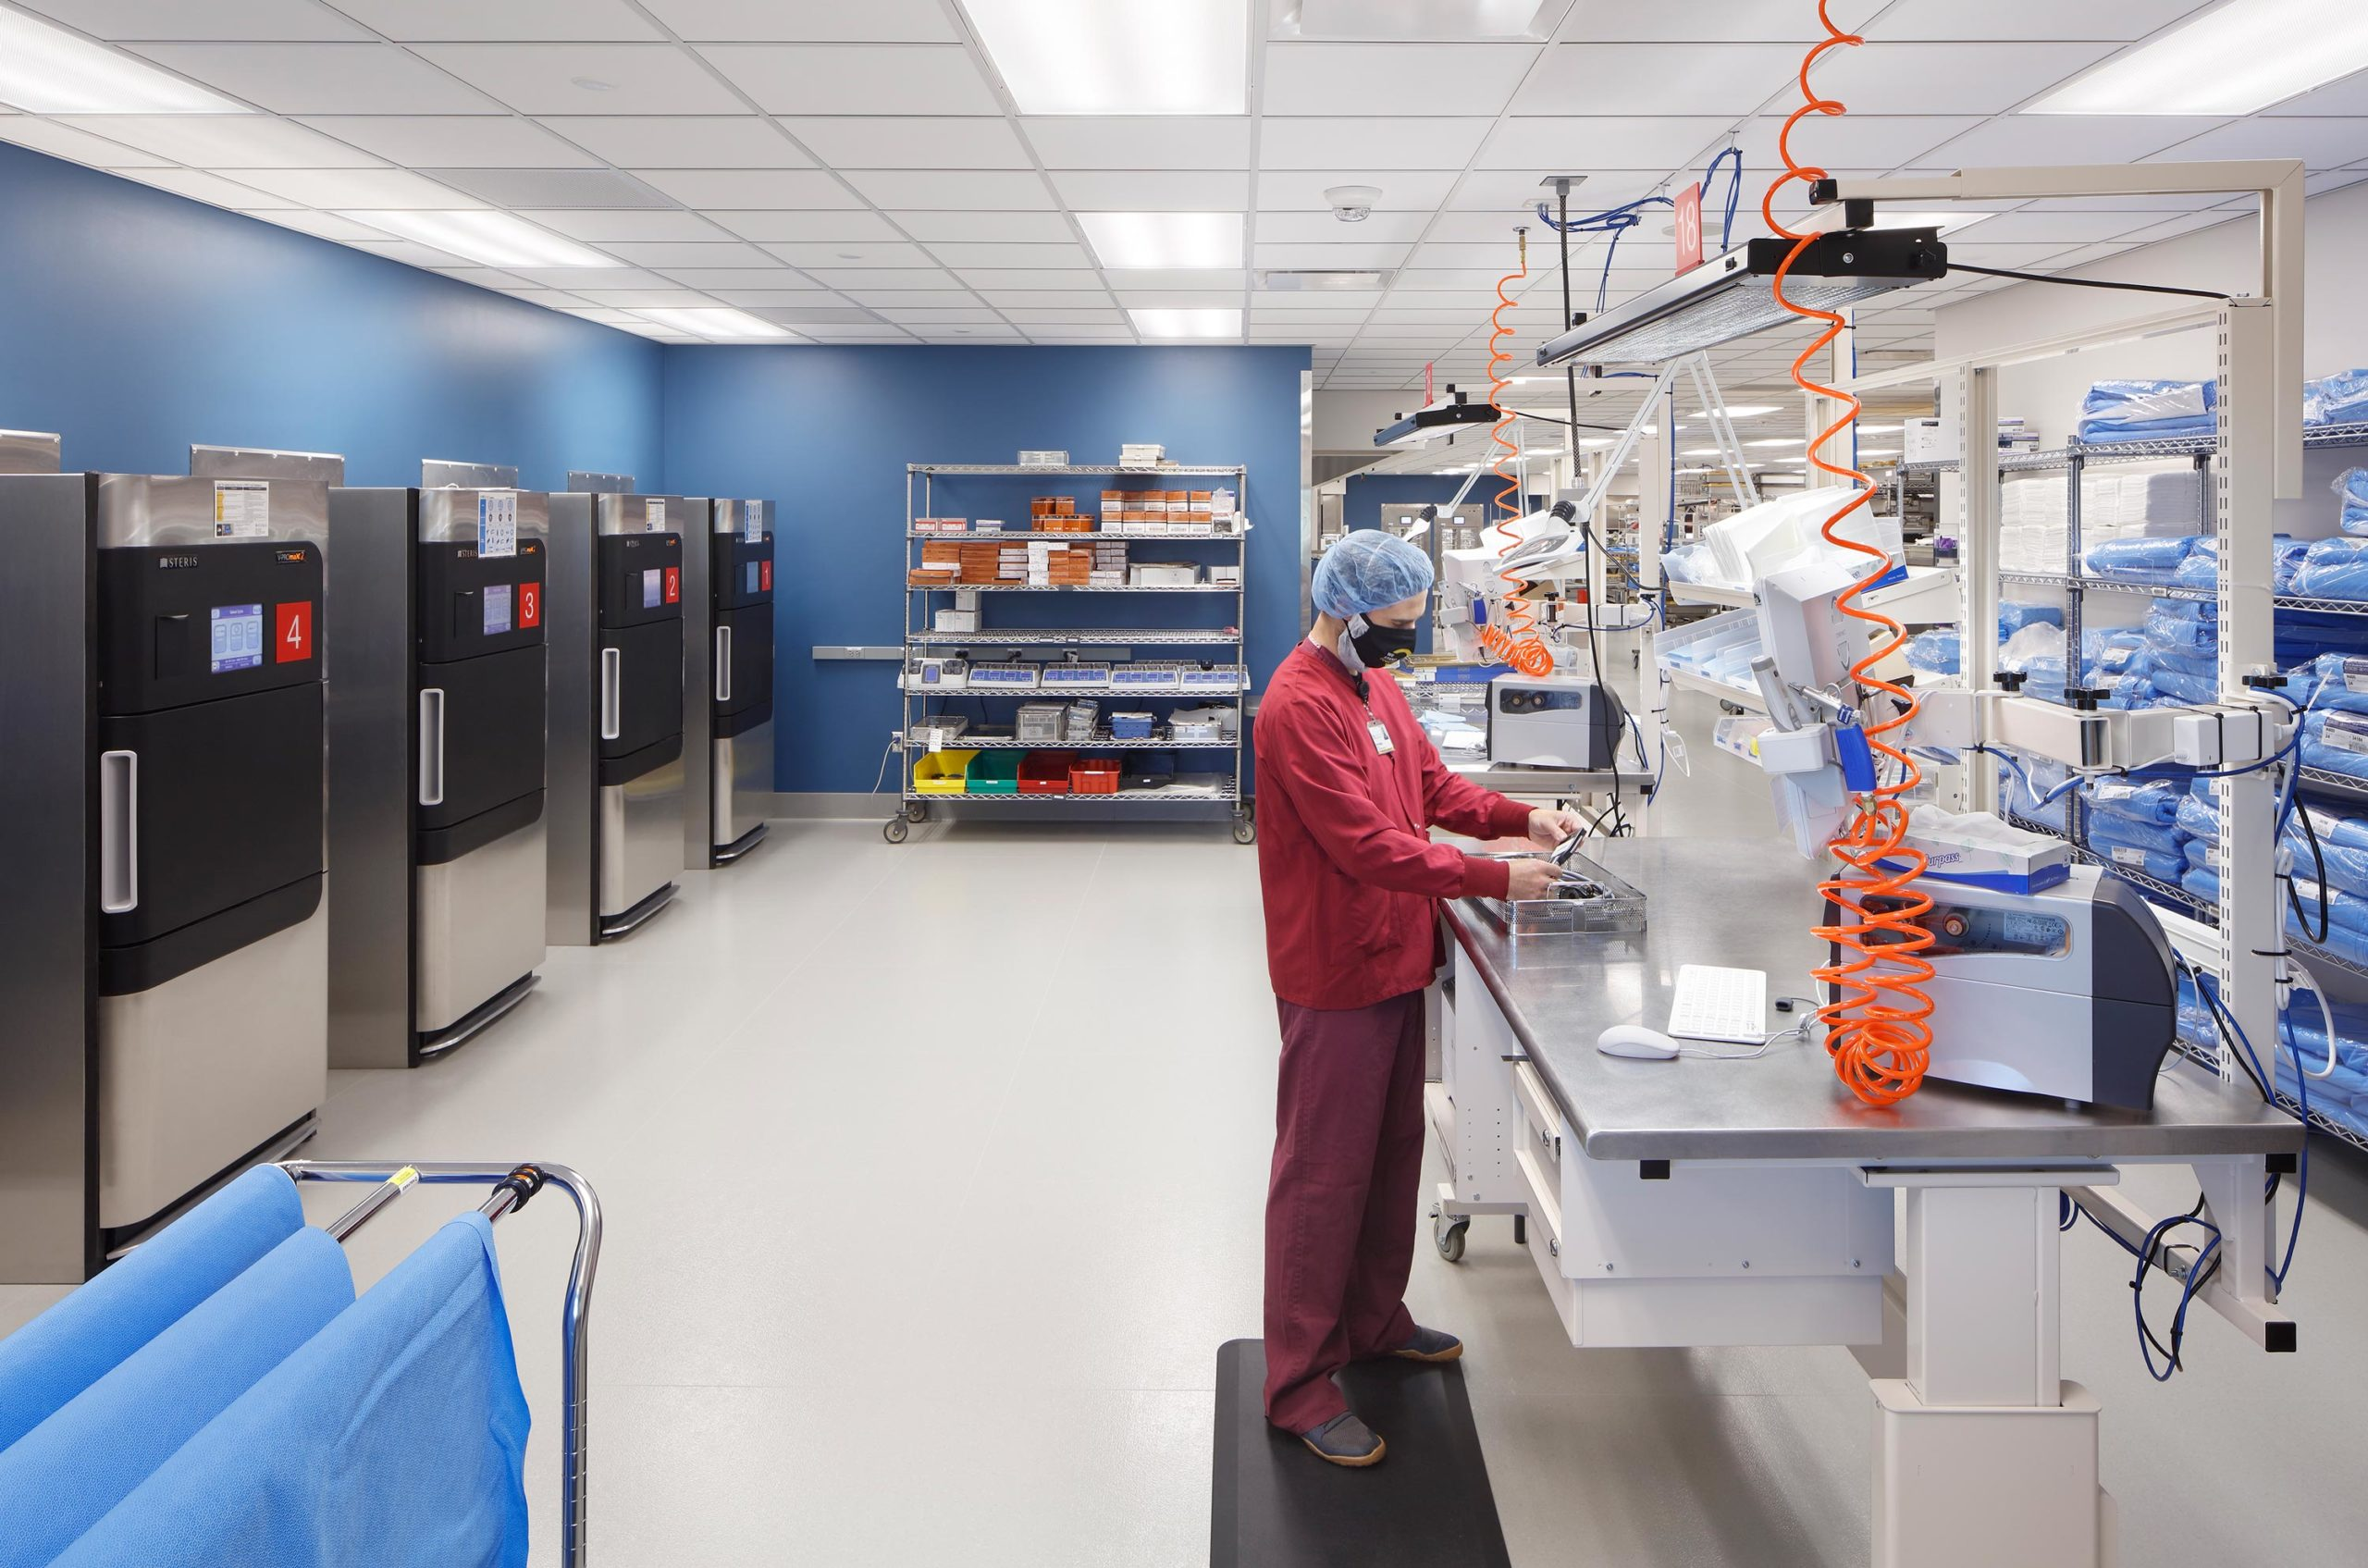 cmba-projects-healthcare-uihc-central-sterile-4